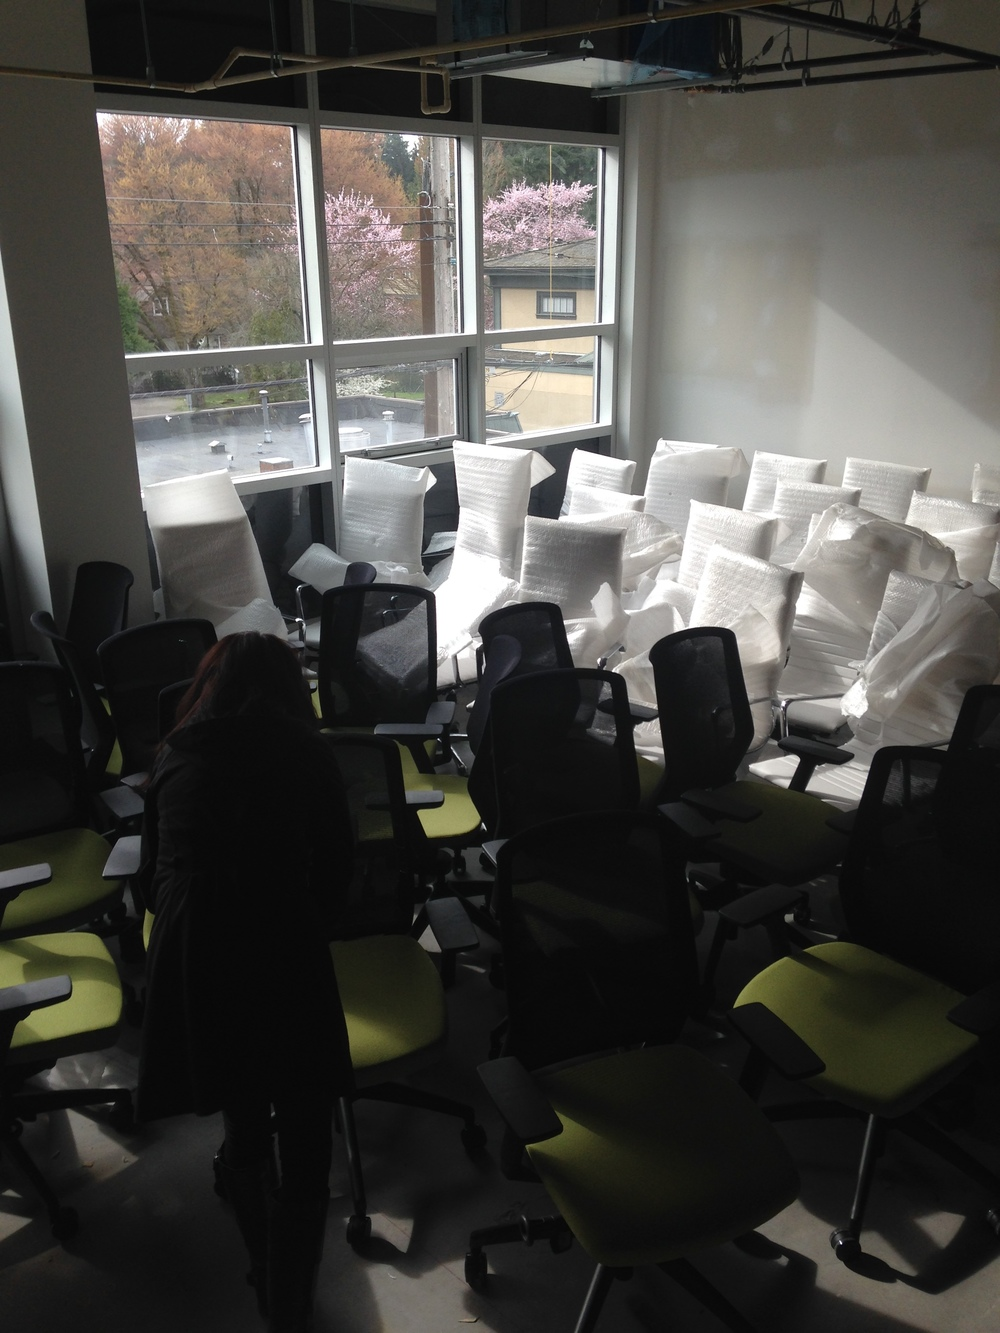 Just a few new chairs